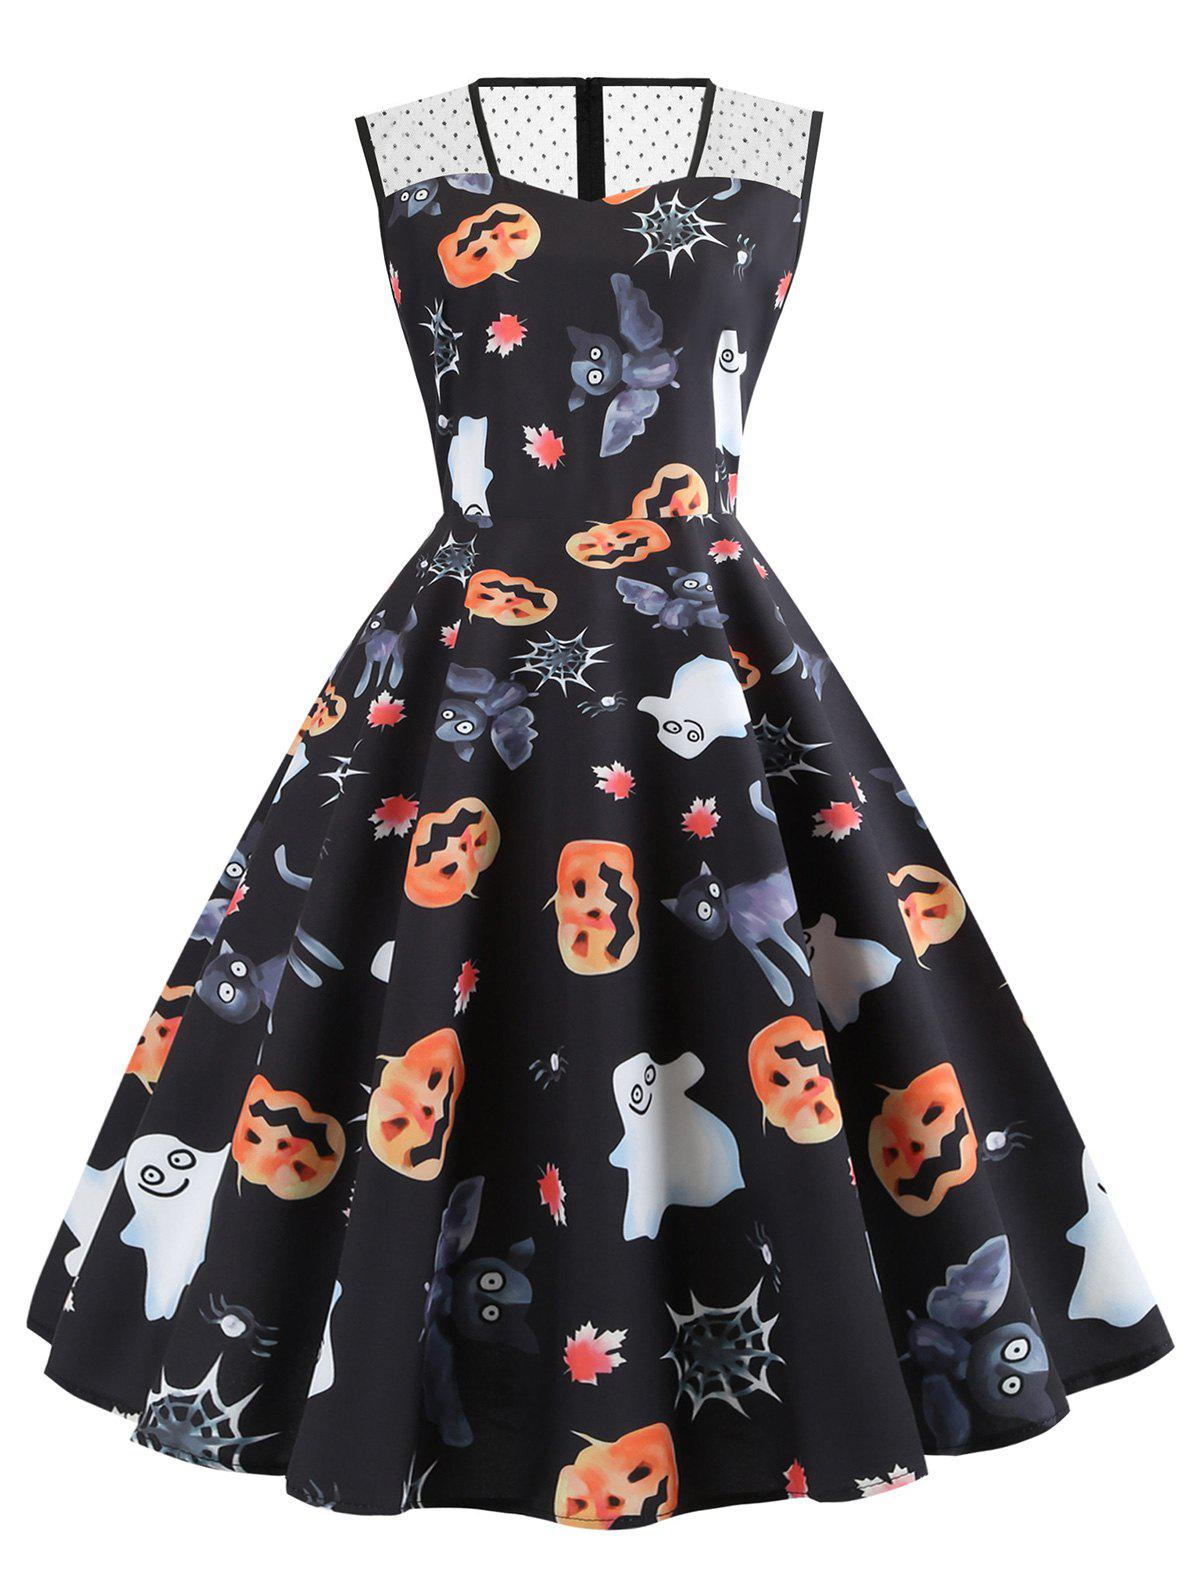 Mesh Panel Pumpkin Ghost Bat Sleeveless Halloween Dress - BLACK M